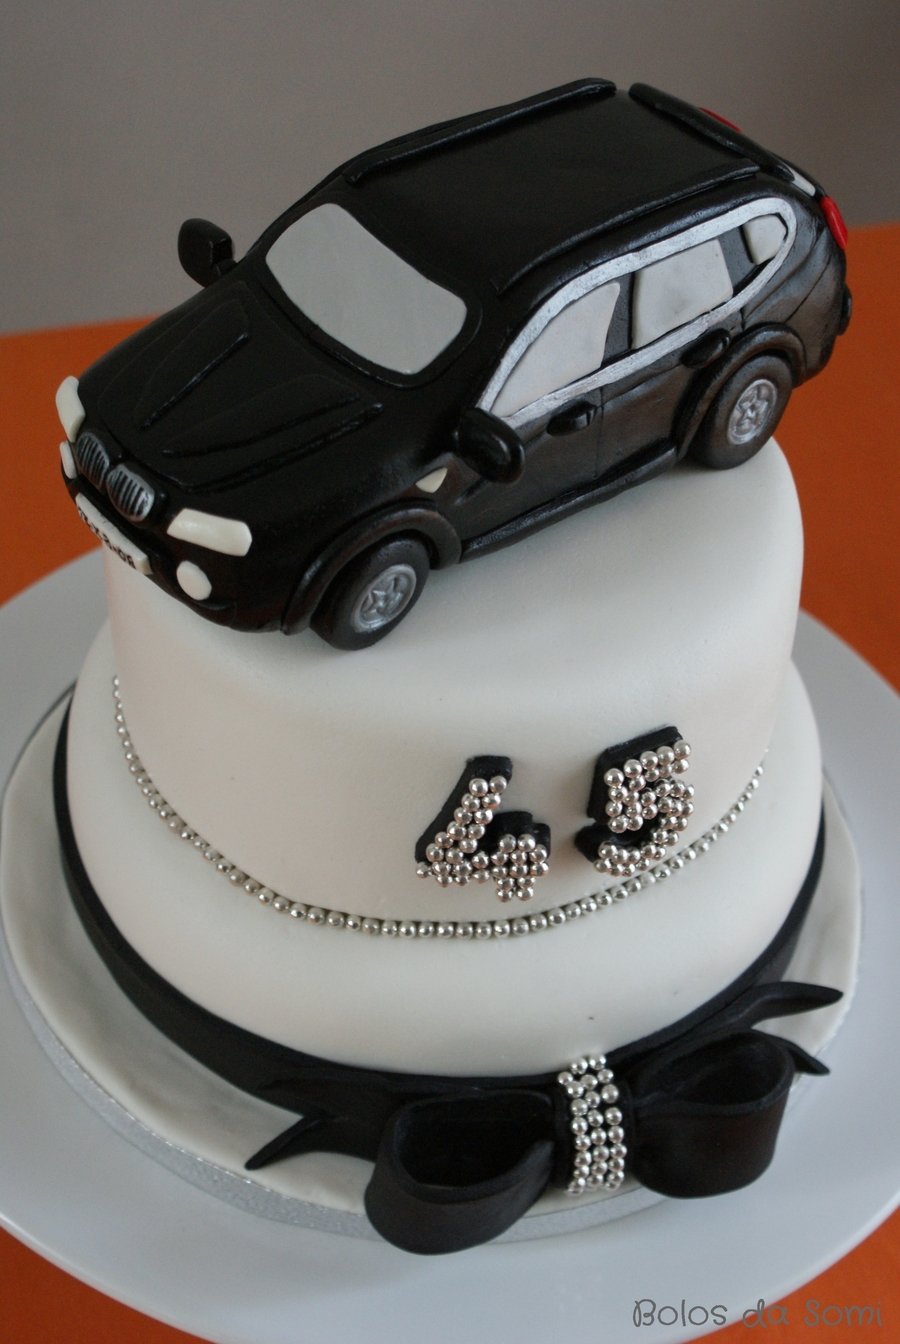 Bmwx3 on Cake Central